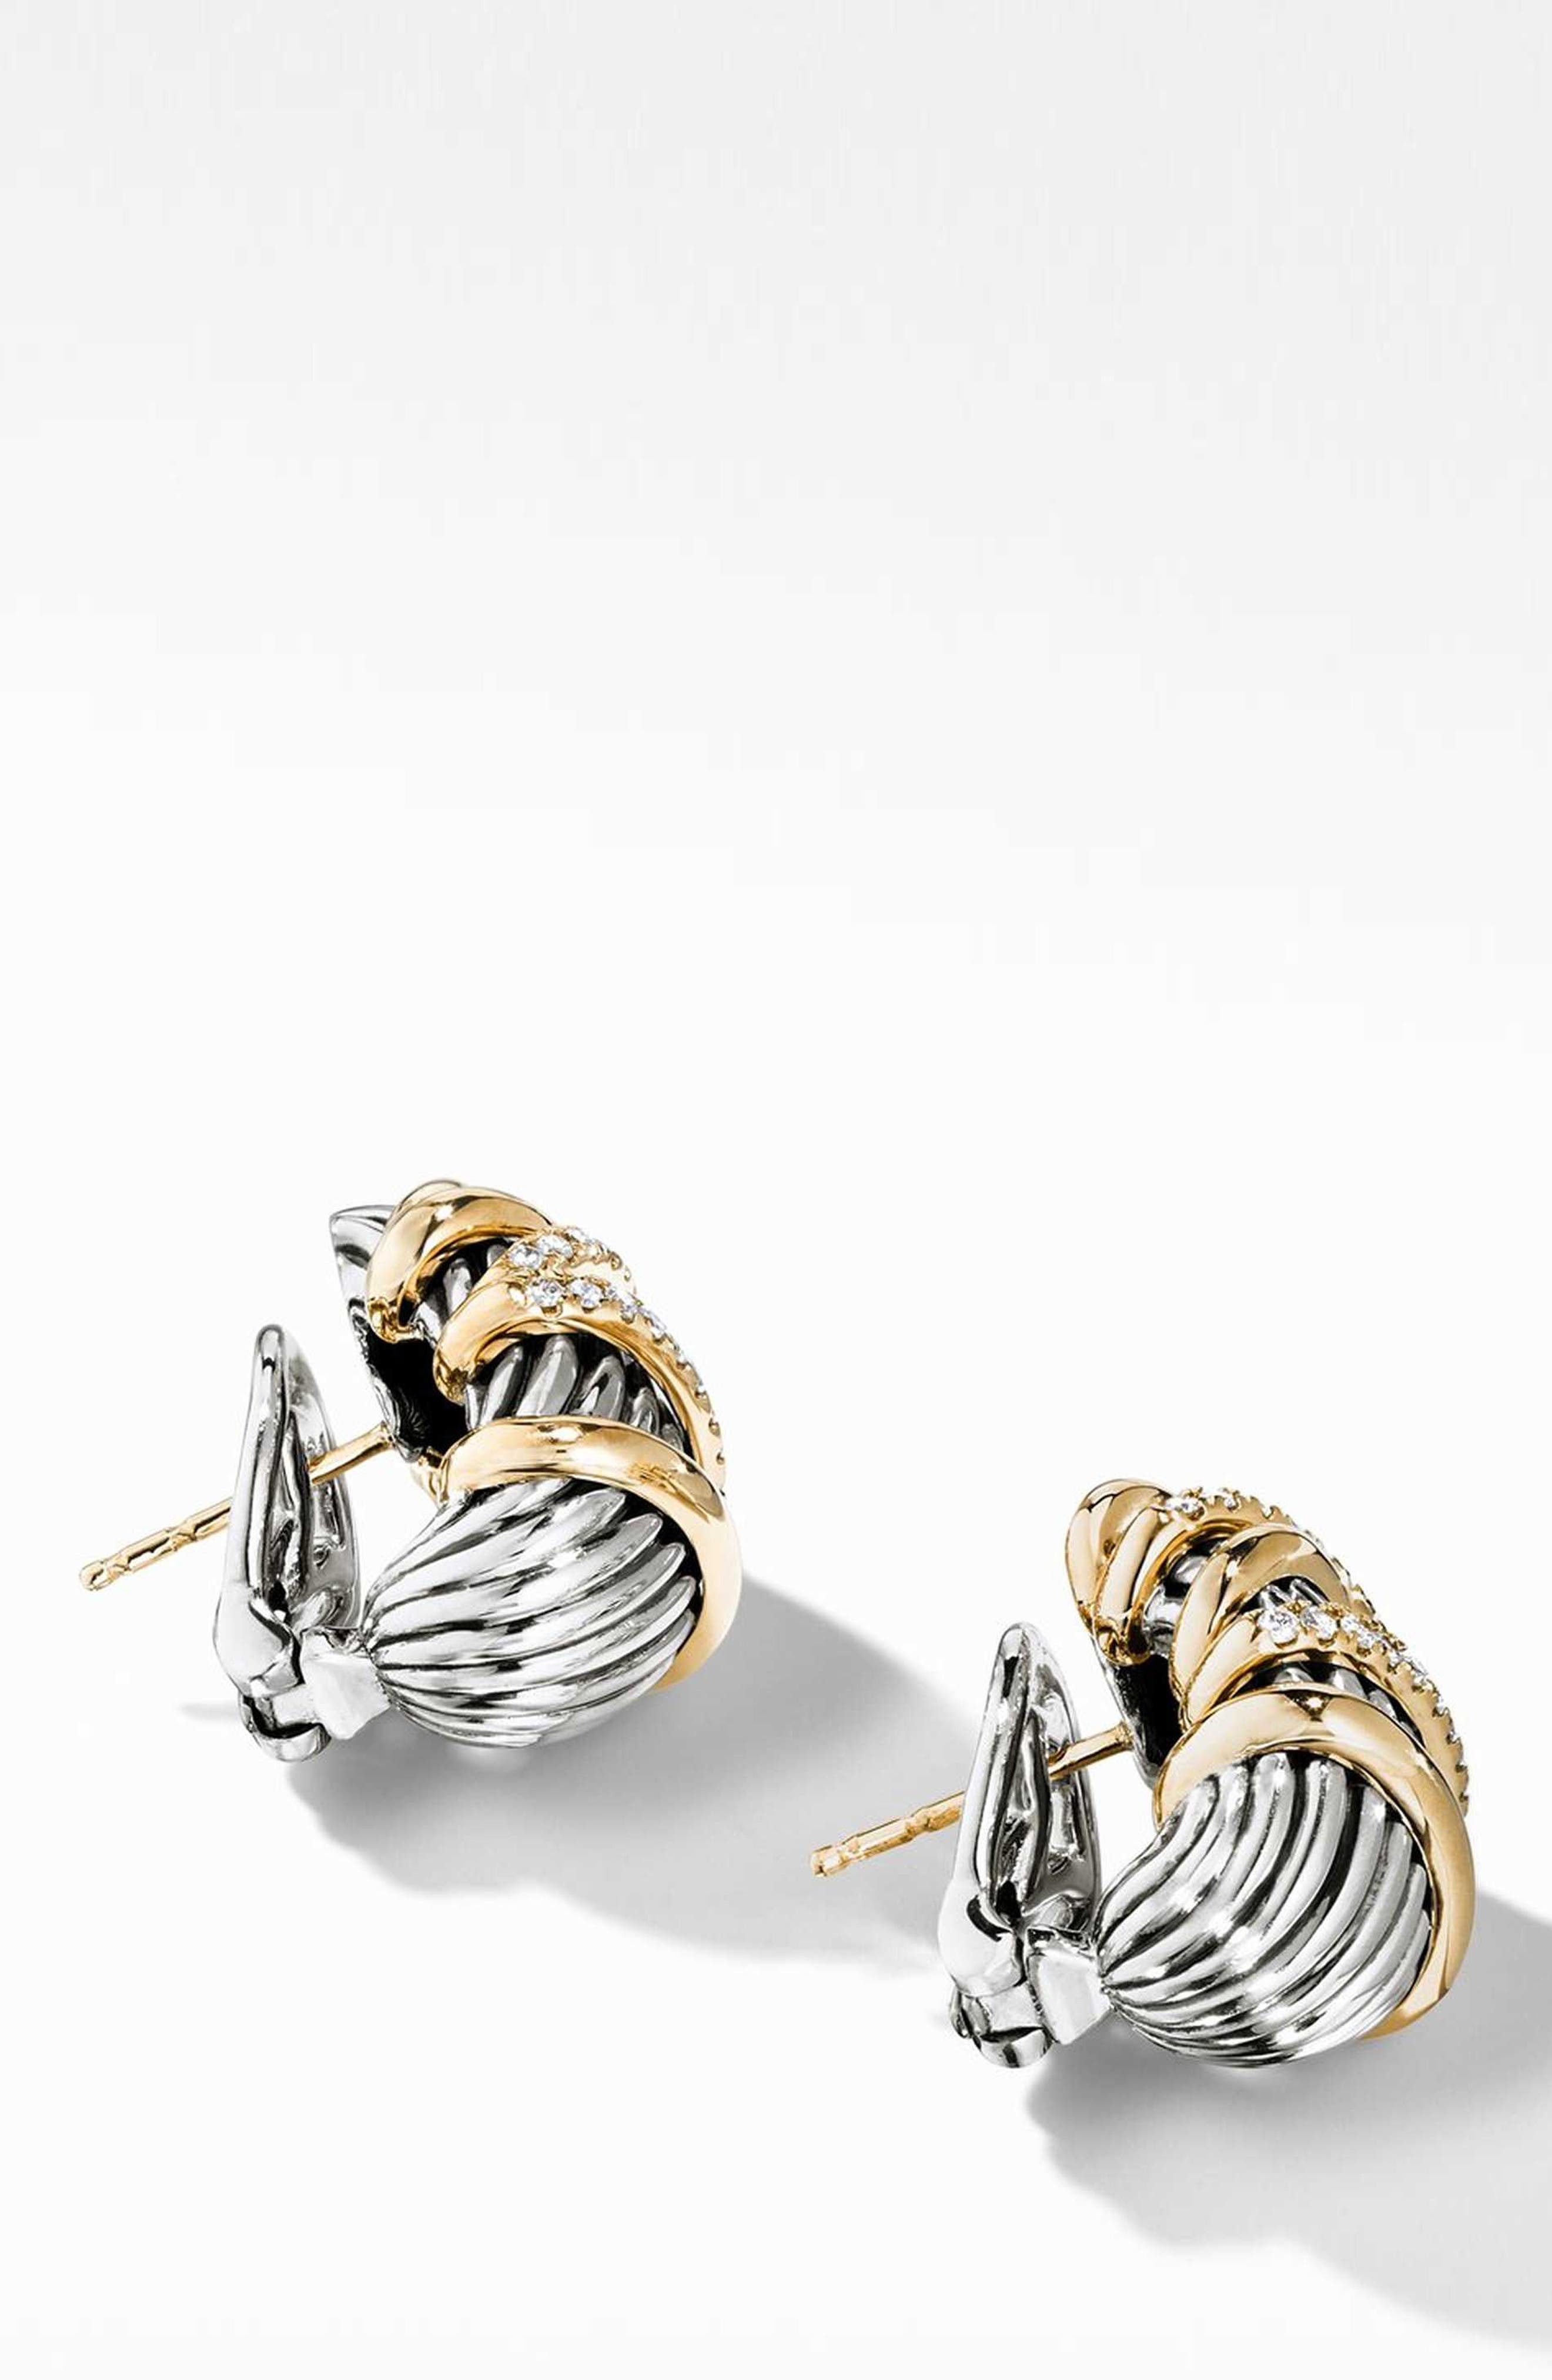 Helena Shrimp Earrings with 18K Gold and Diamonds,                         Main,                         color, GOLD/ SILVER/ DIAMOND